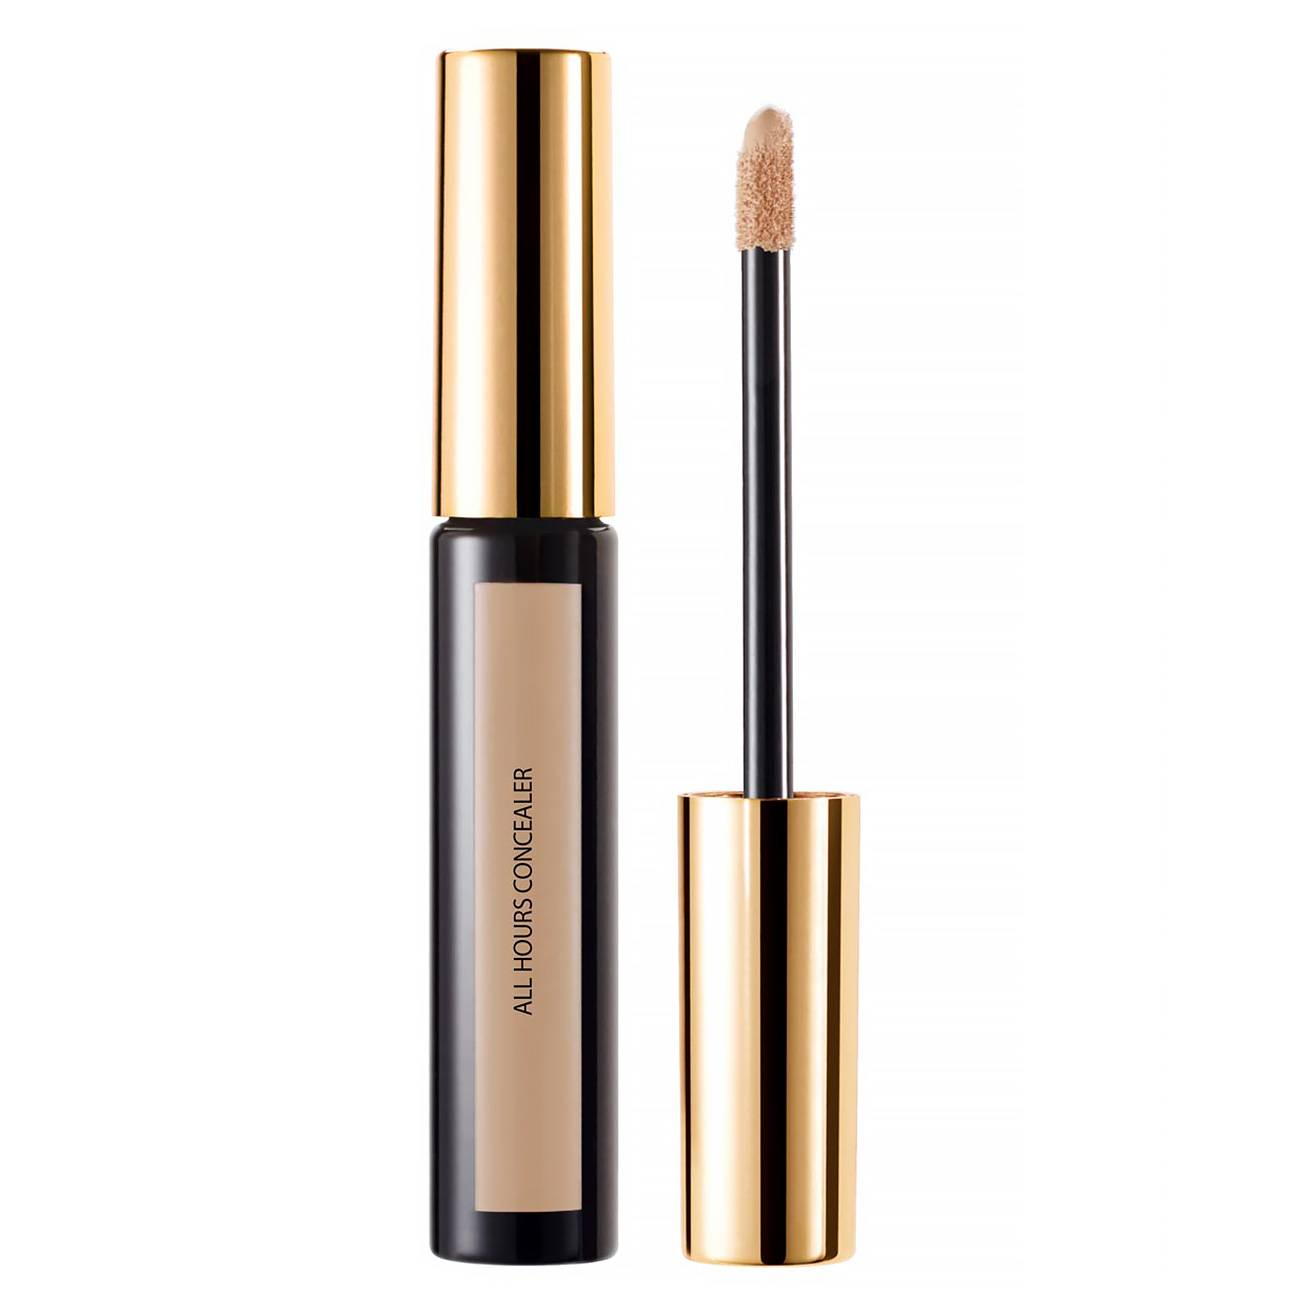 Encre De Peau All Hours Concealer 3 5ml